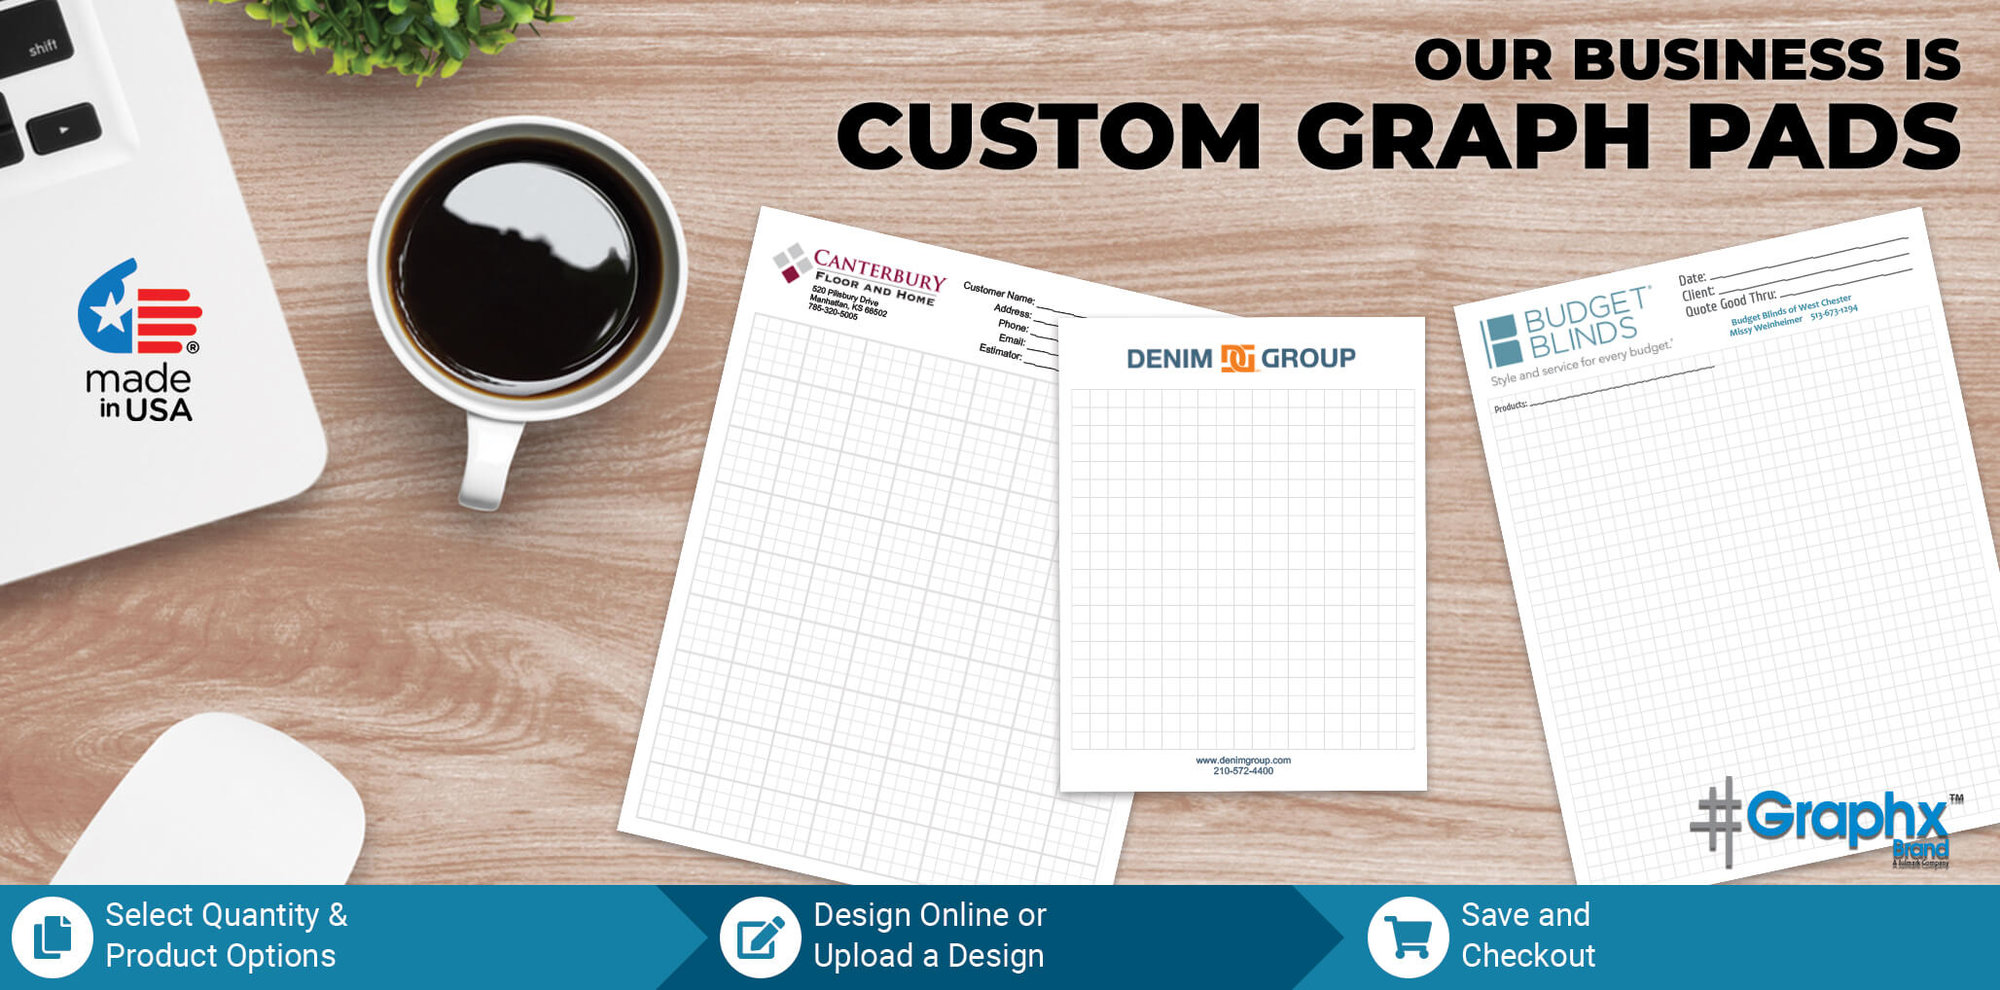 https://printpps.com/images/products_gallery_images/Graph-Pads_Product-Page-Banner_1_42.jpg